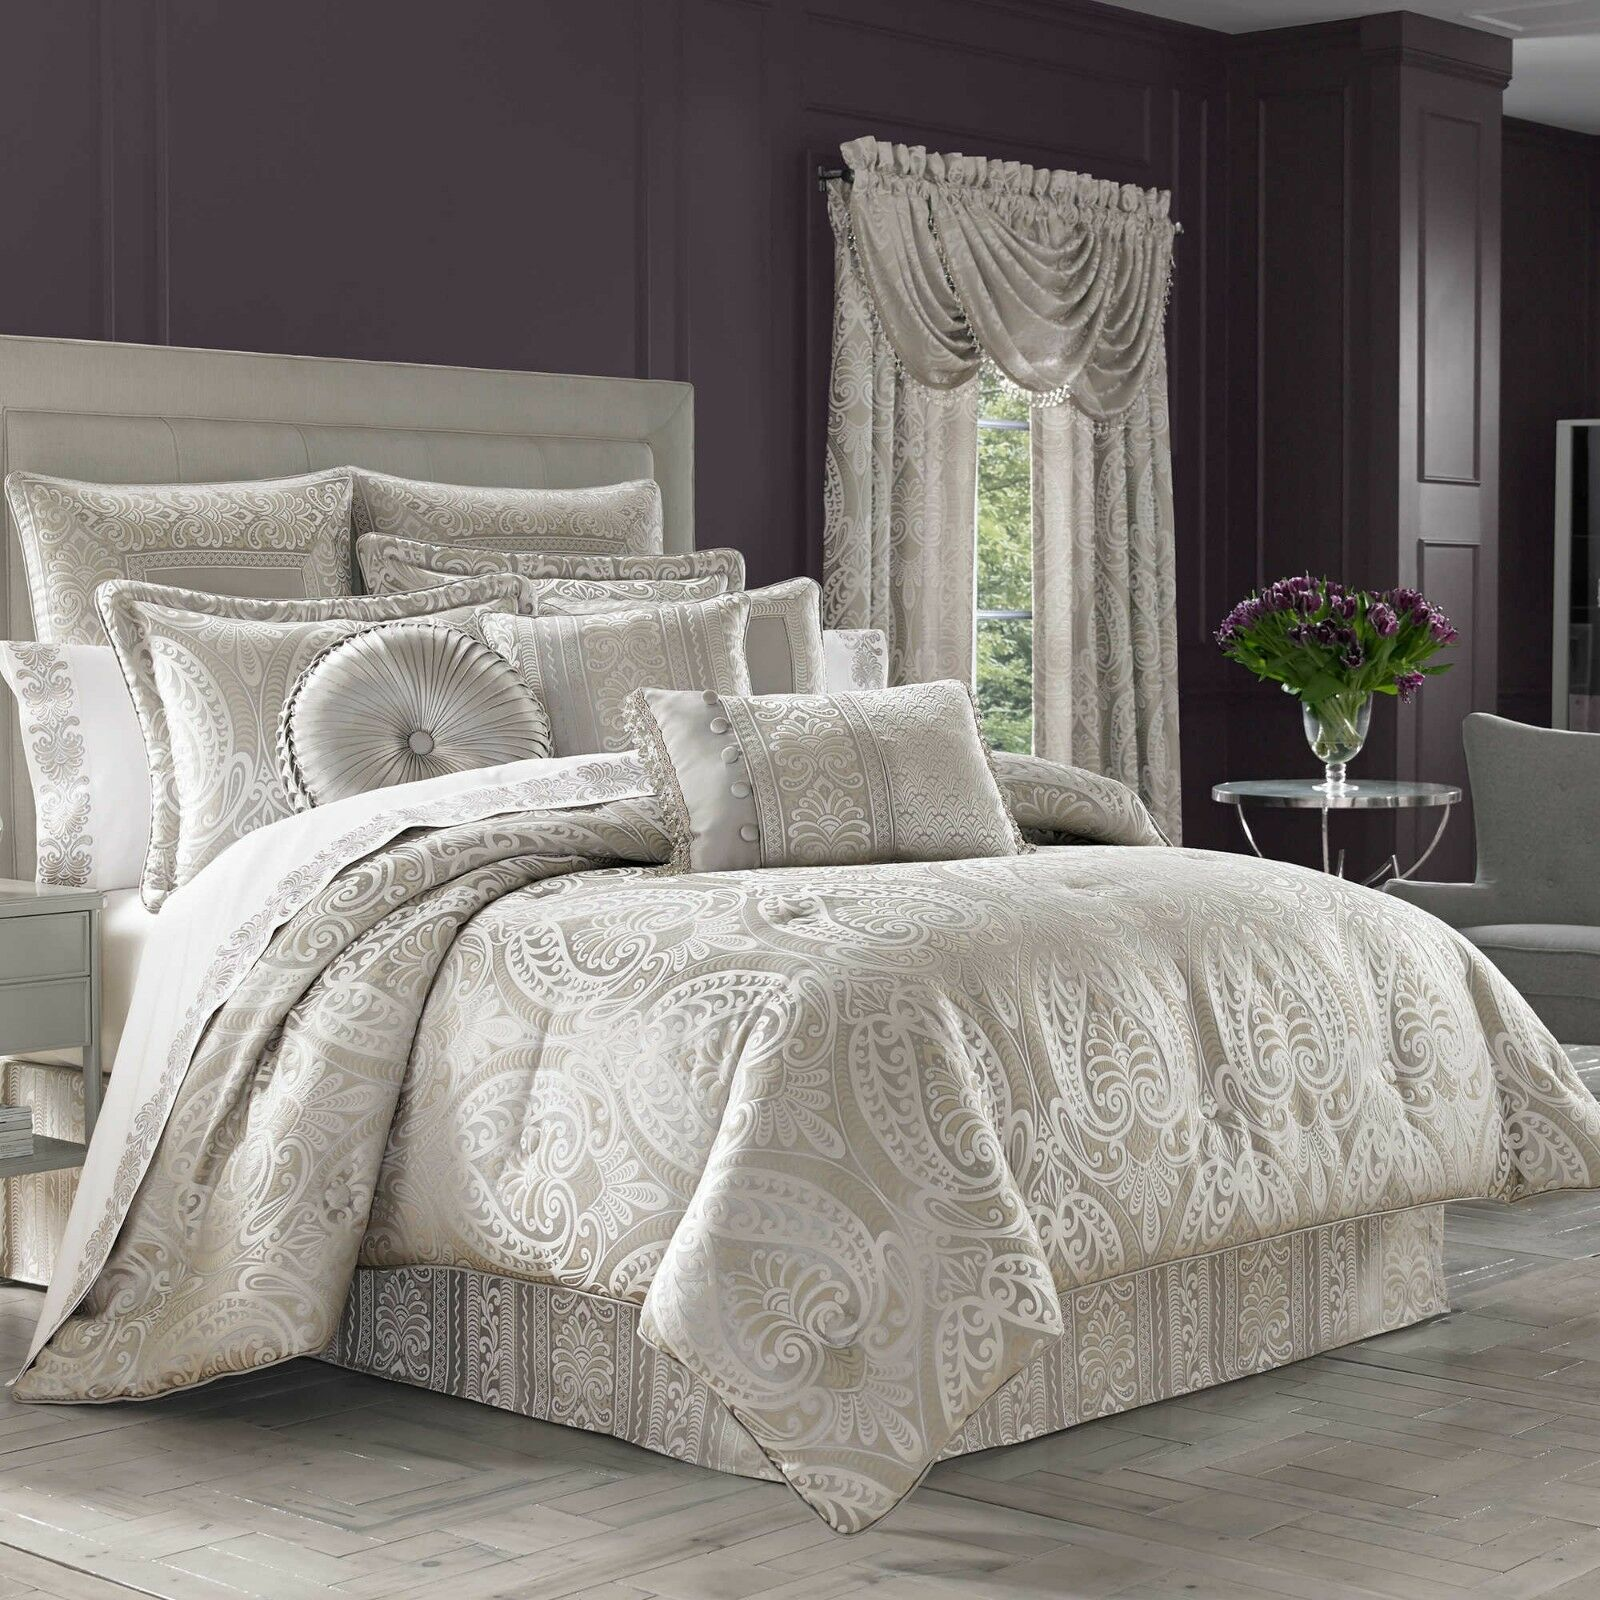 New J. Queen New York Le Blanc 11 Piece Queen Comforter Set Silver Color - $653.39